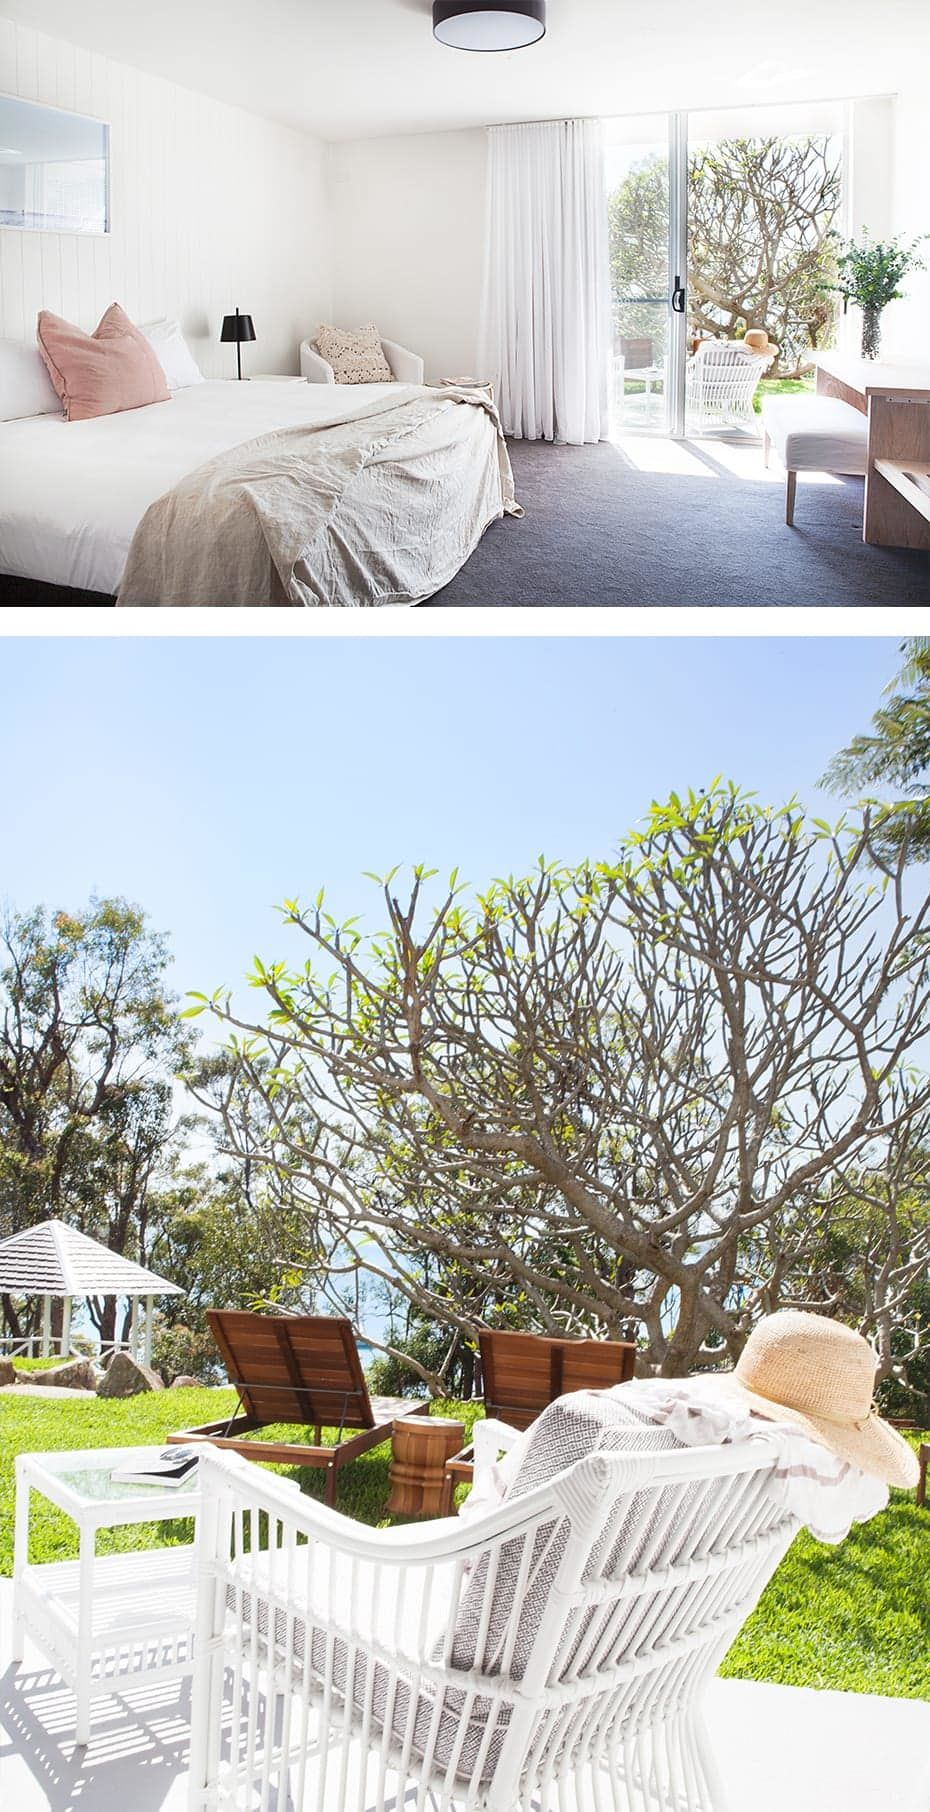 top image of hotel suite with view out to garden. bottom image of outdoor furniture on green grass